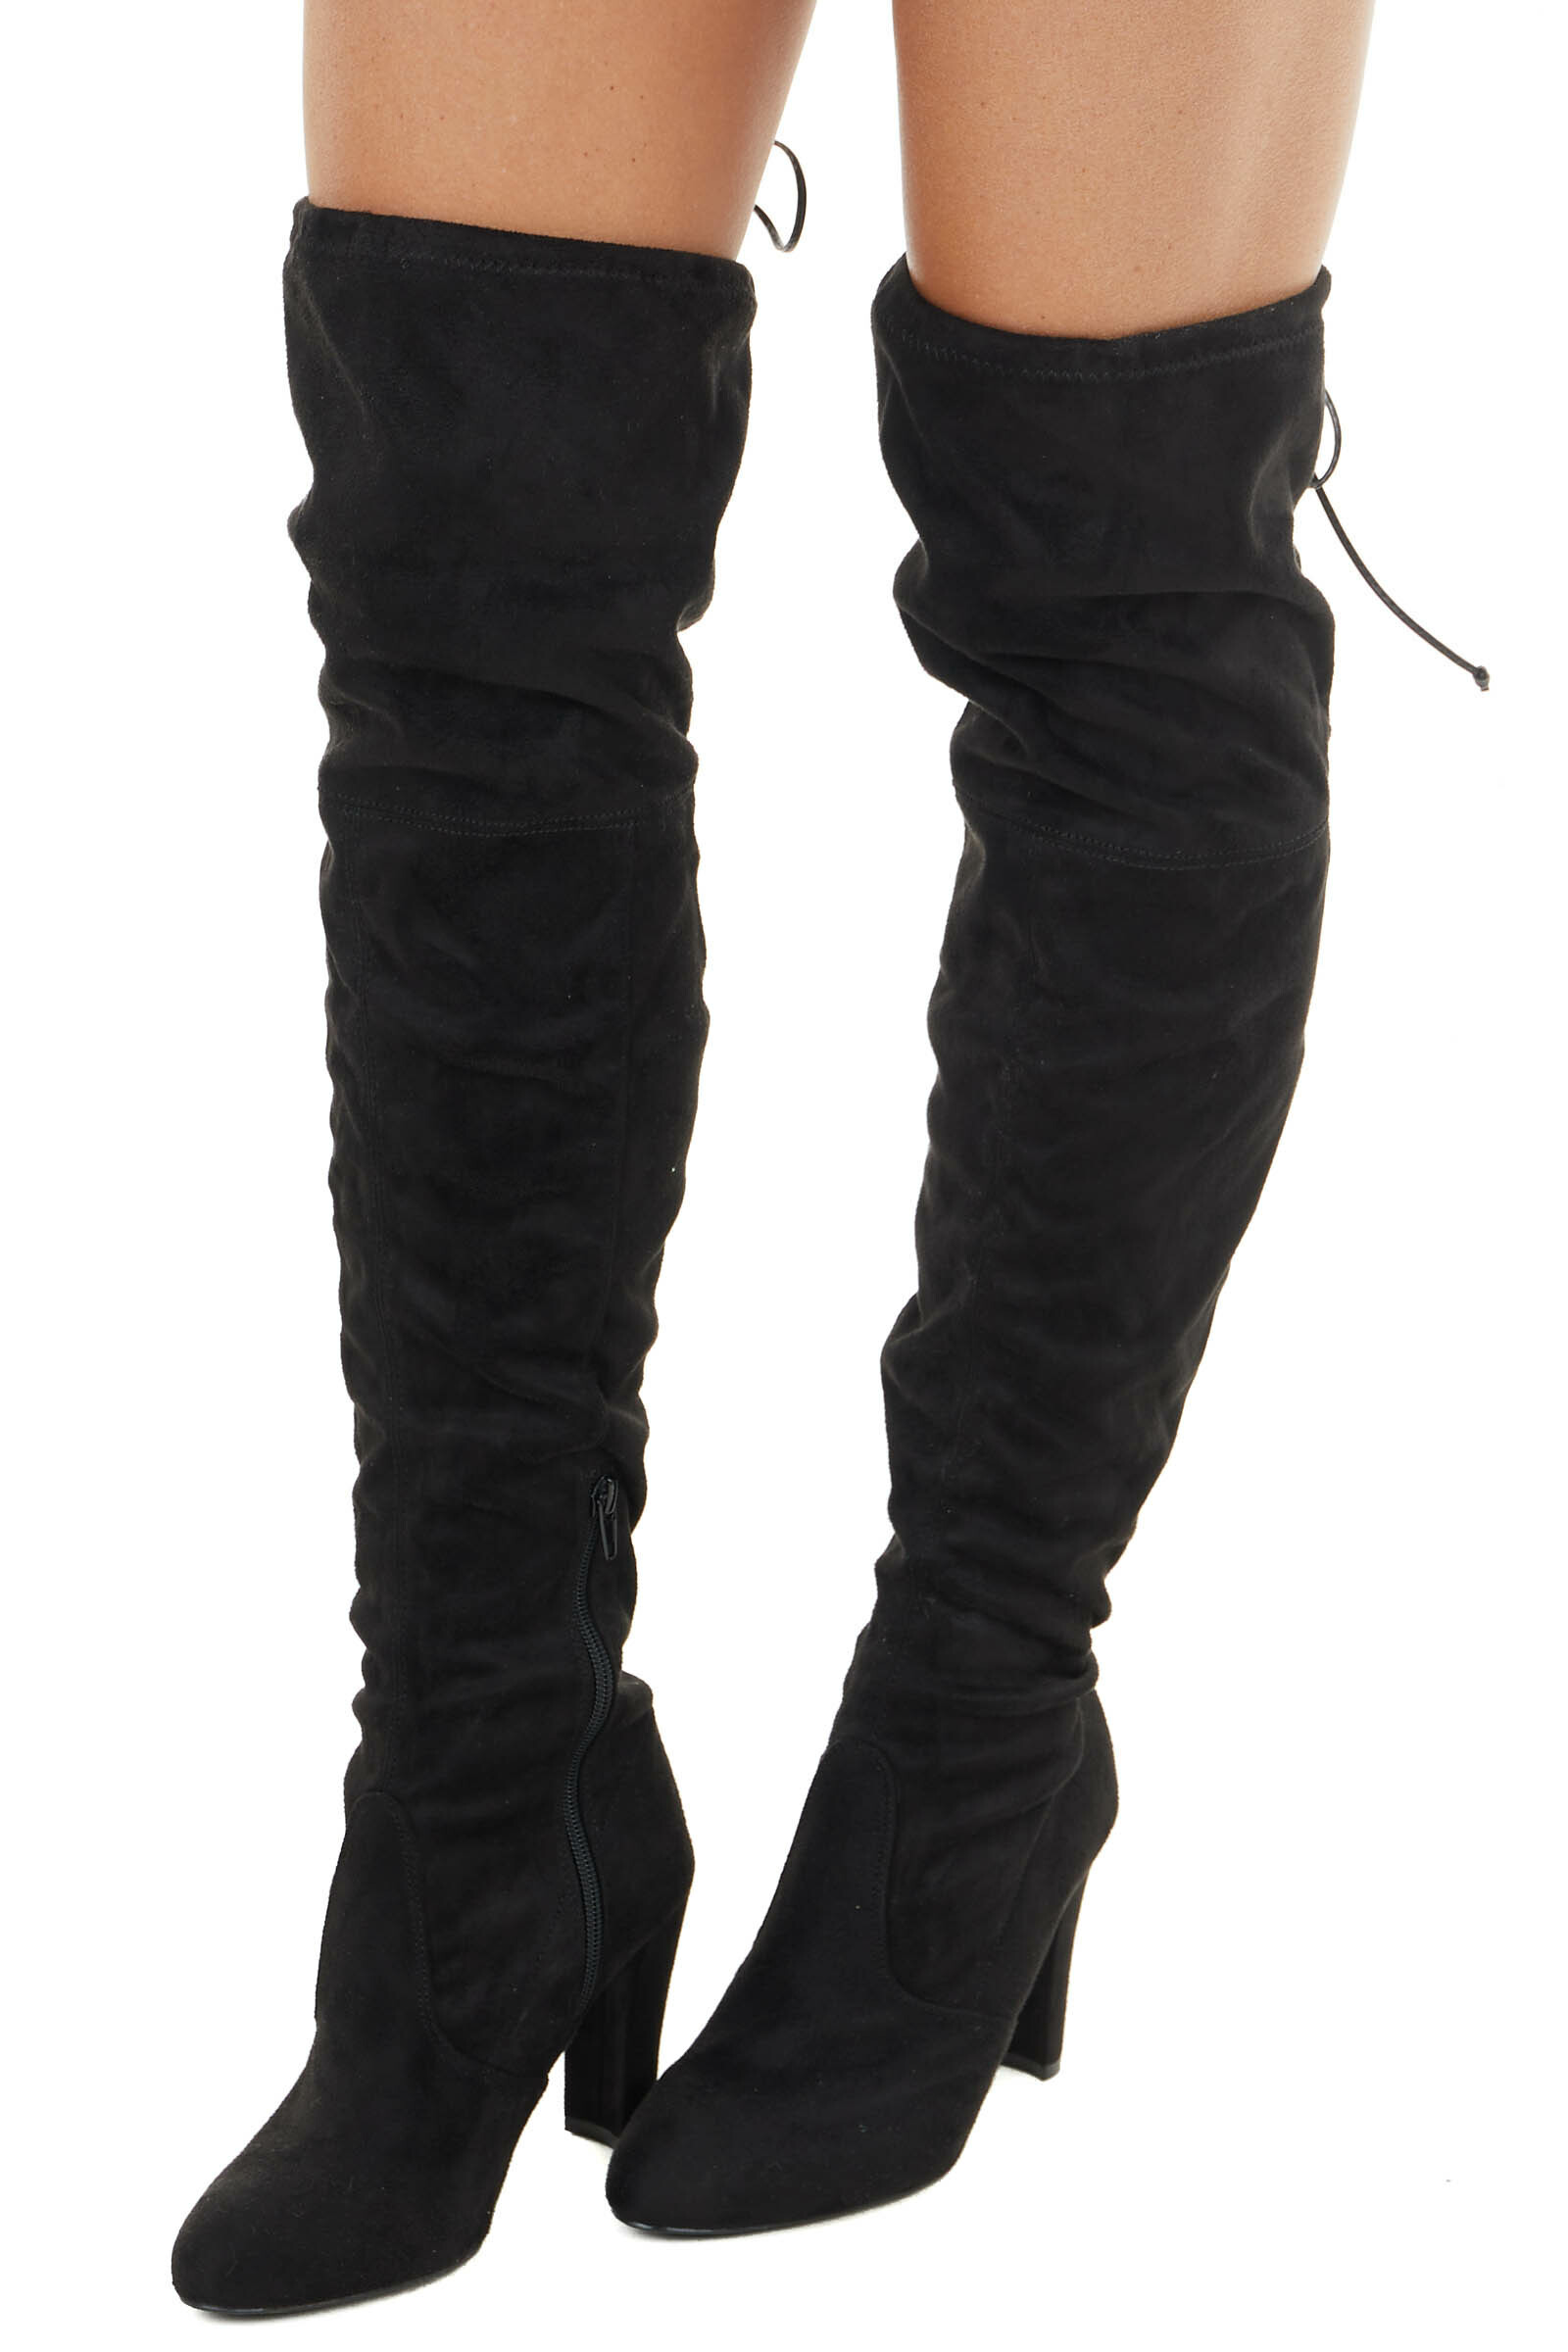 Black Faux Suede Above the Knee High Heel Boots with Tie